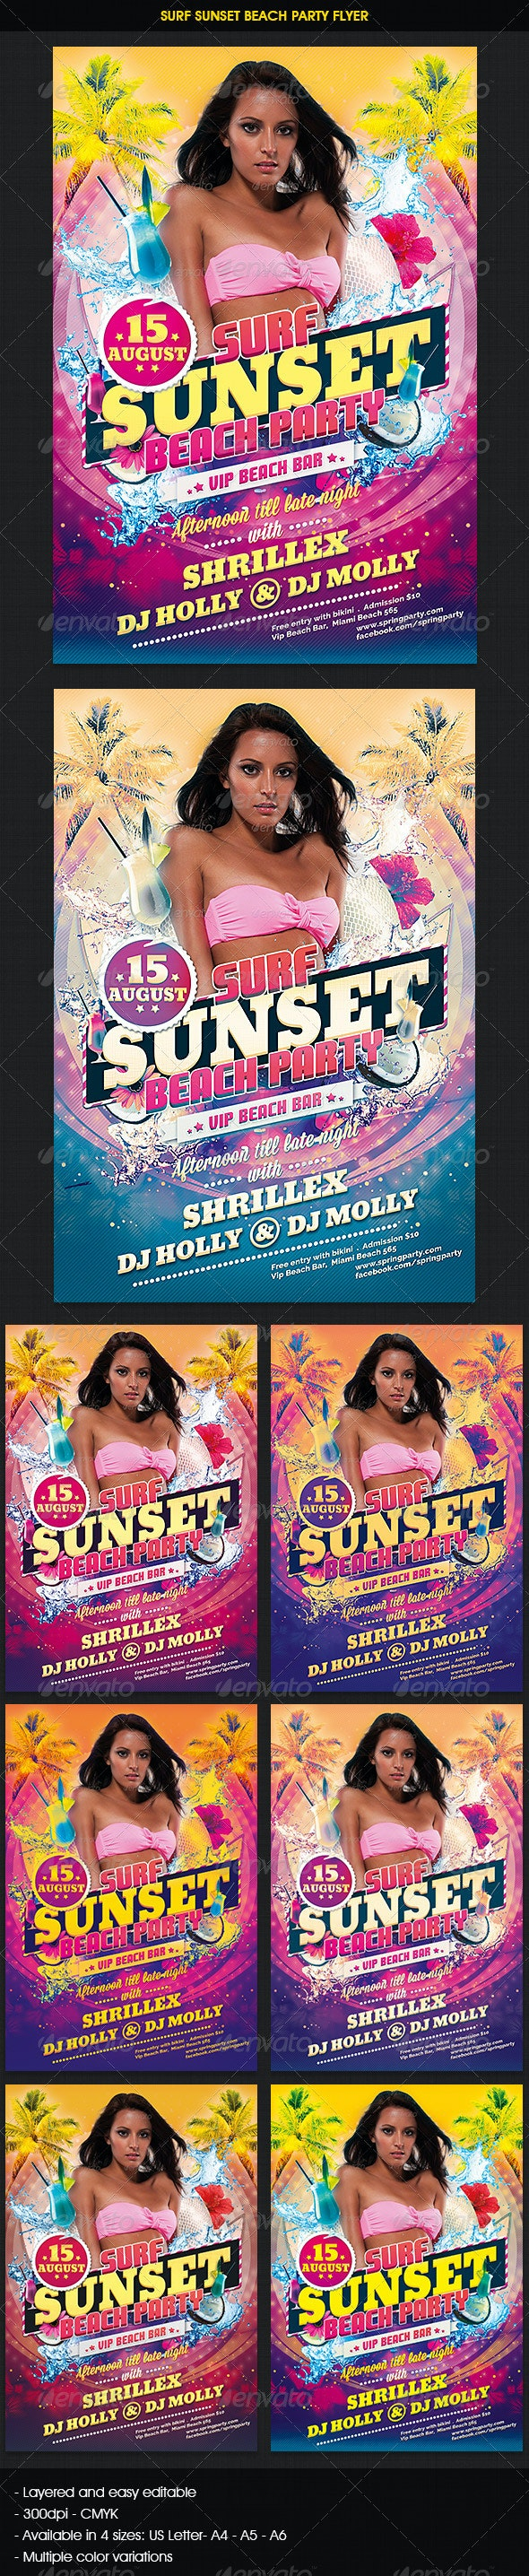 Sunset Beach Party Flyer - Clubs & Parties Events